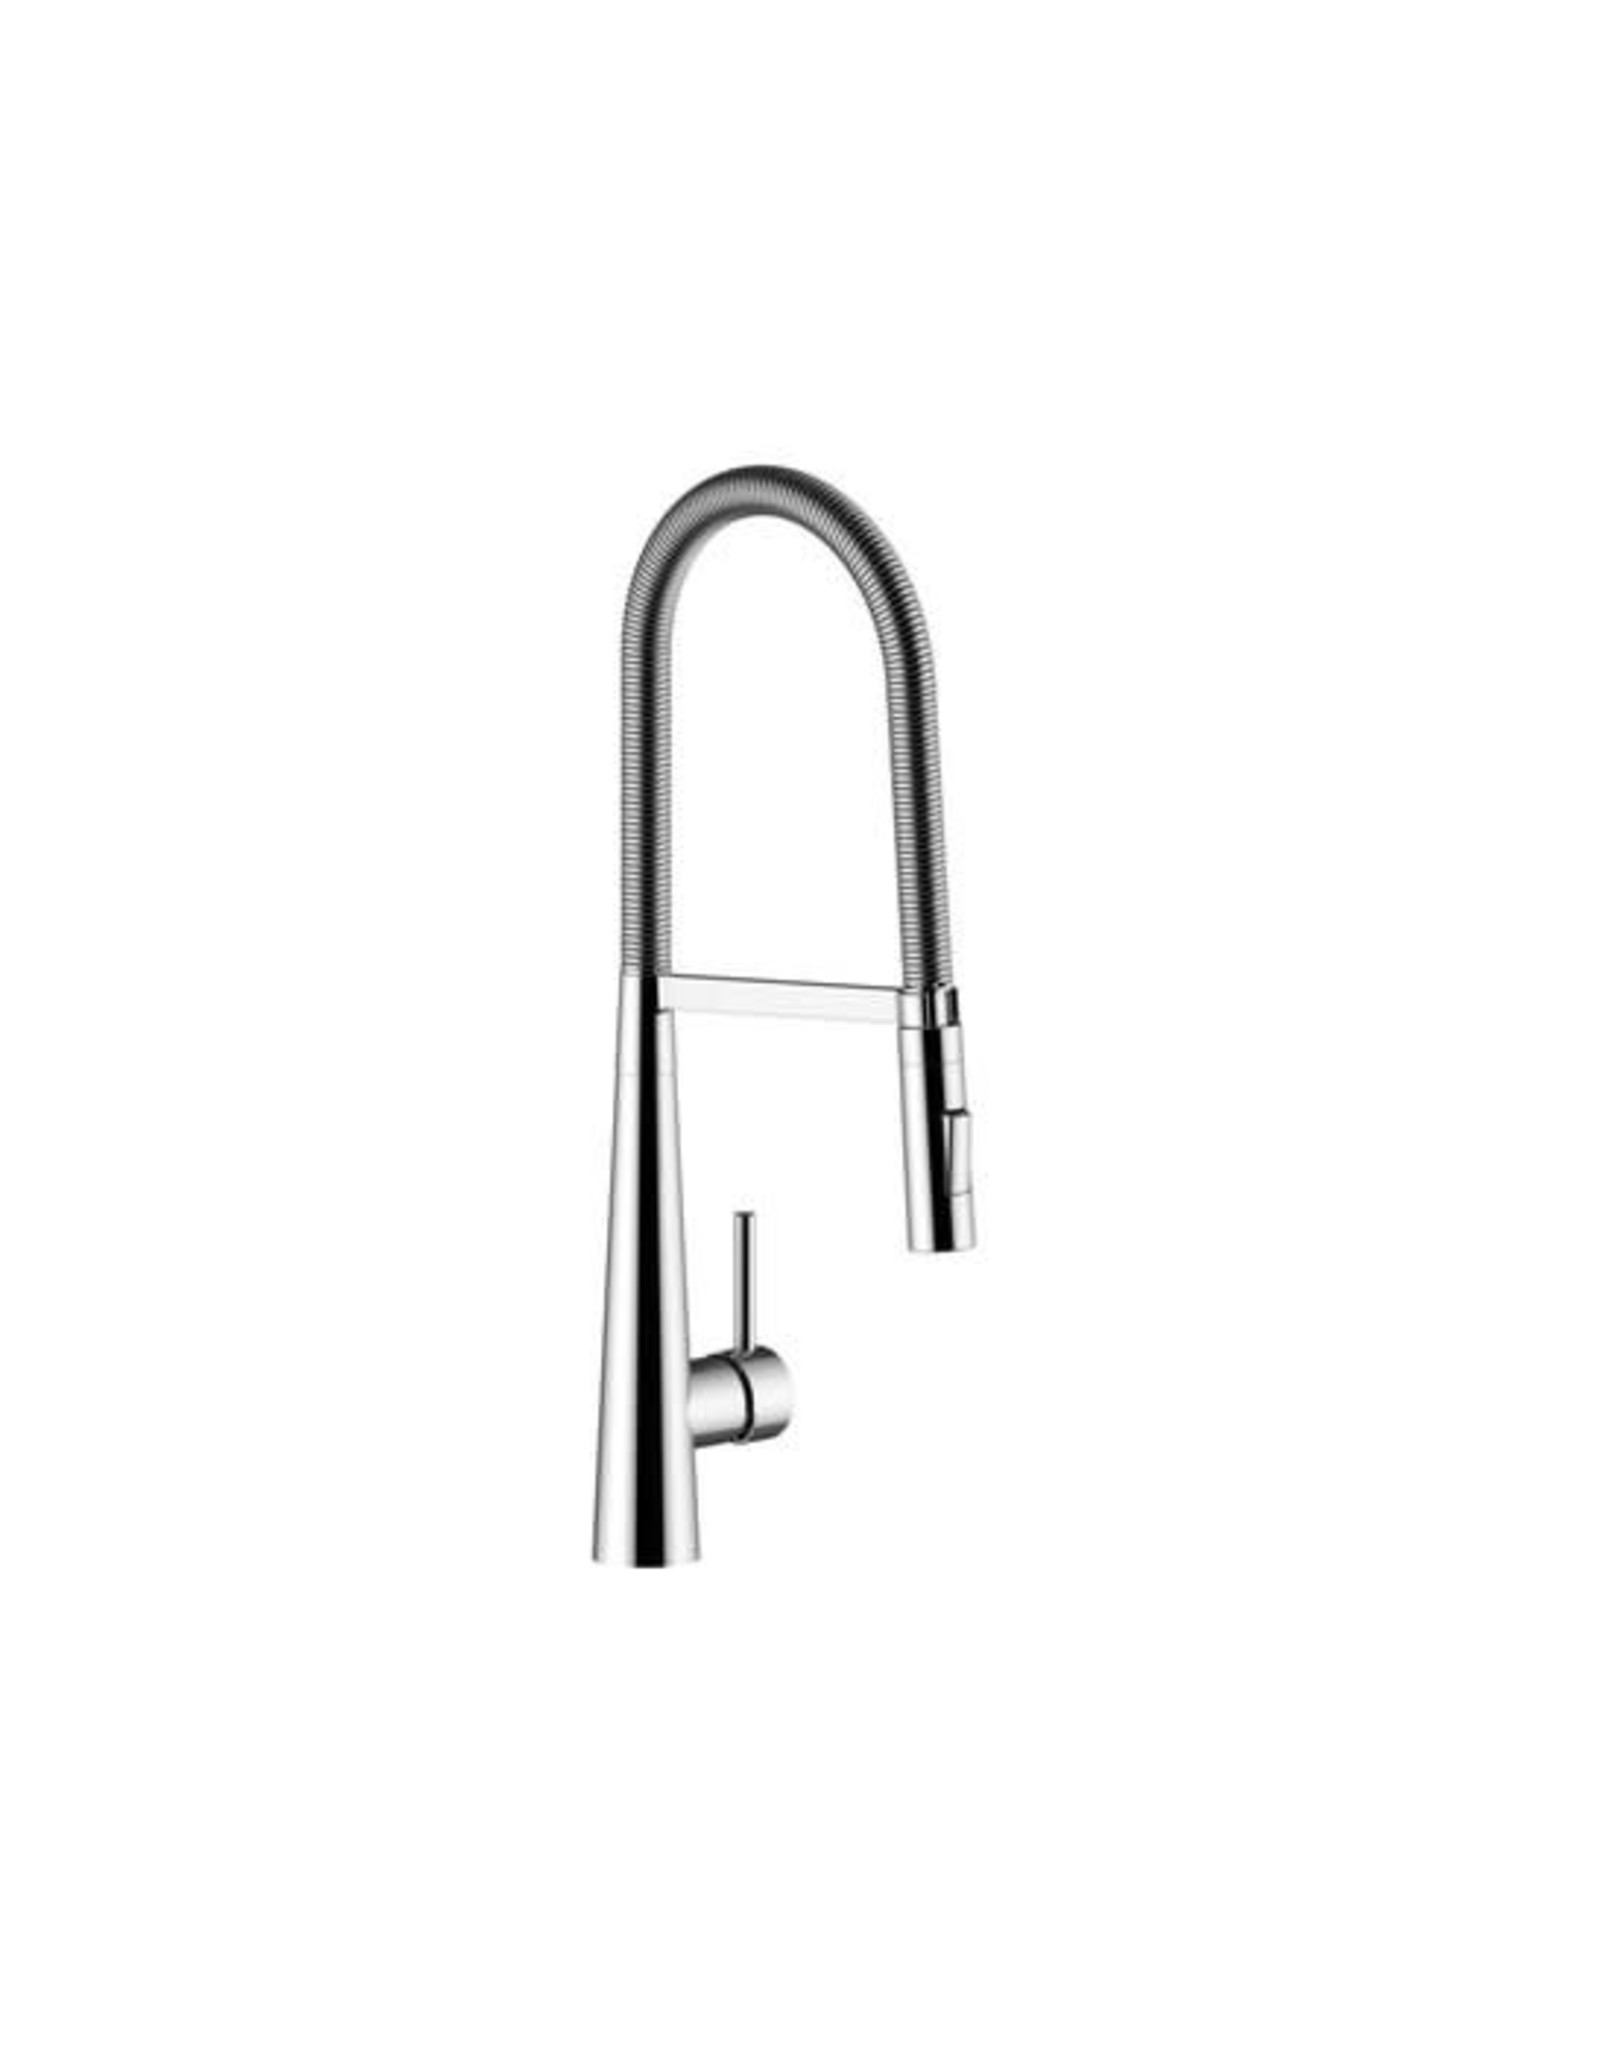 Vogt VOGT CARINTHIA - KITCHEN FAUCET WITH 2-FUNCTION DETACHABLE SPRAY